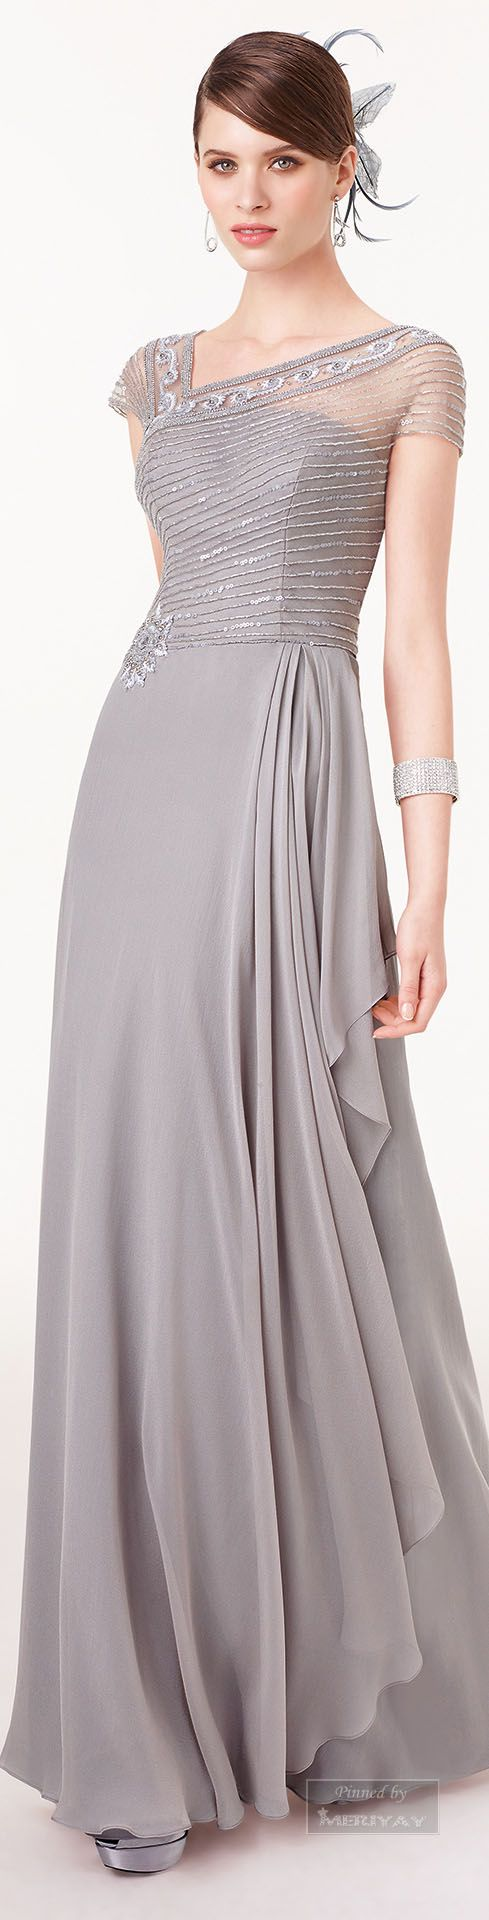 Aire Barcelona ~ Evening Gown, Silver Grey, 2015.